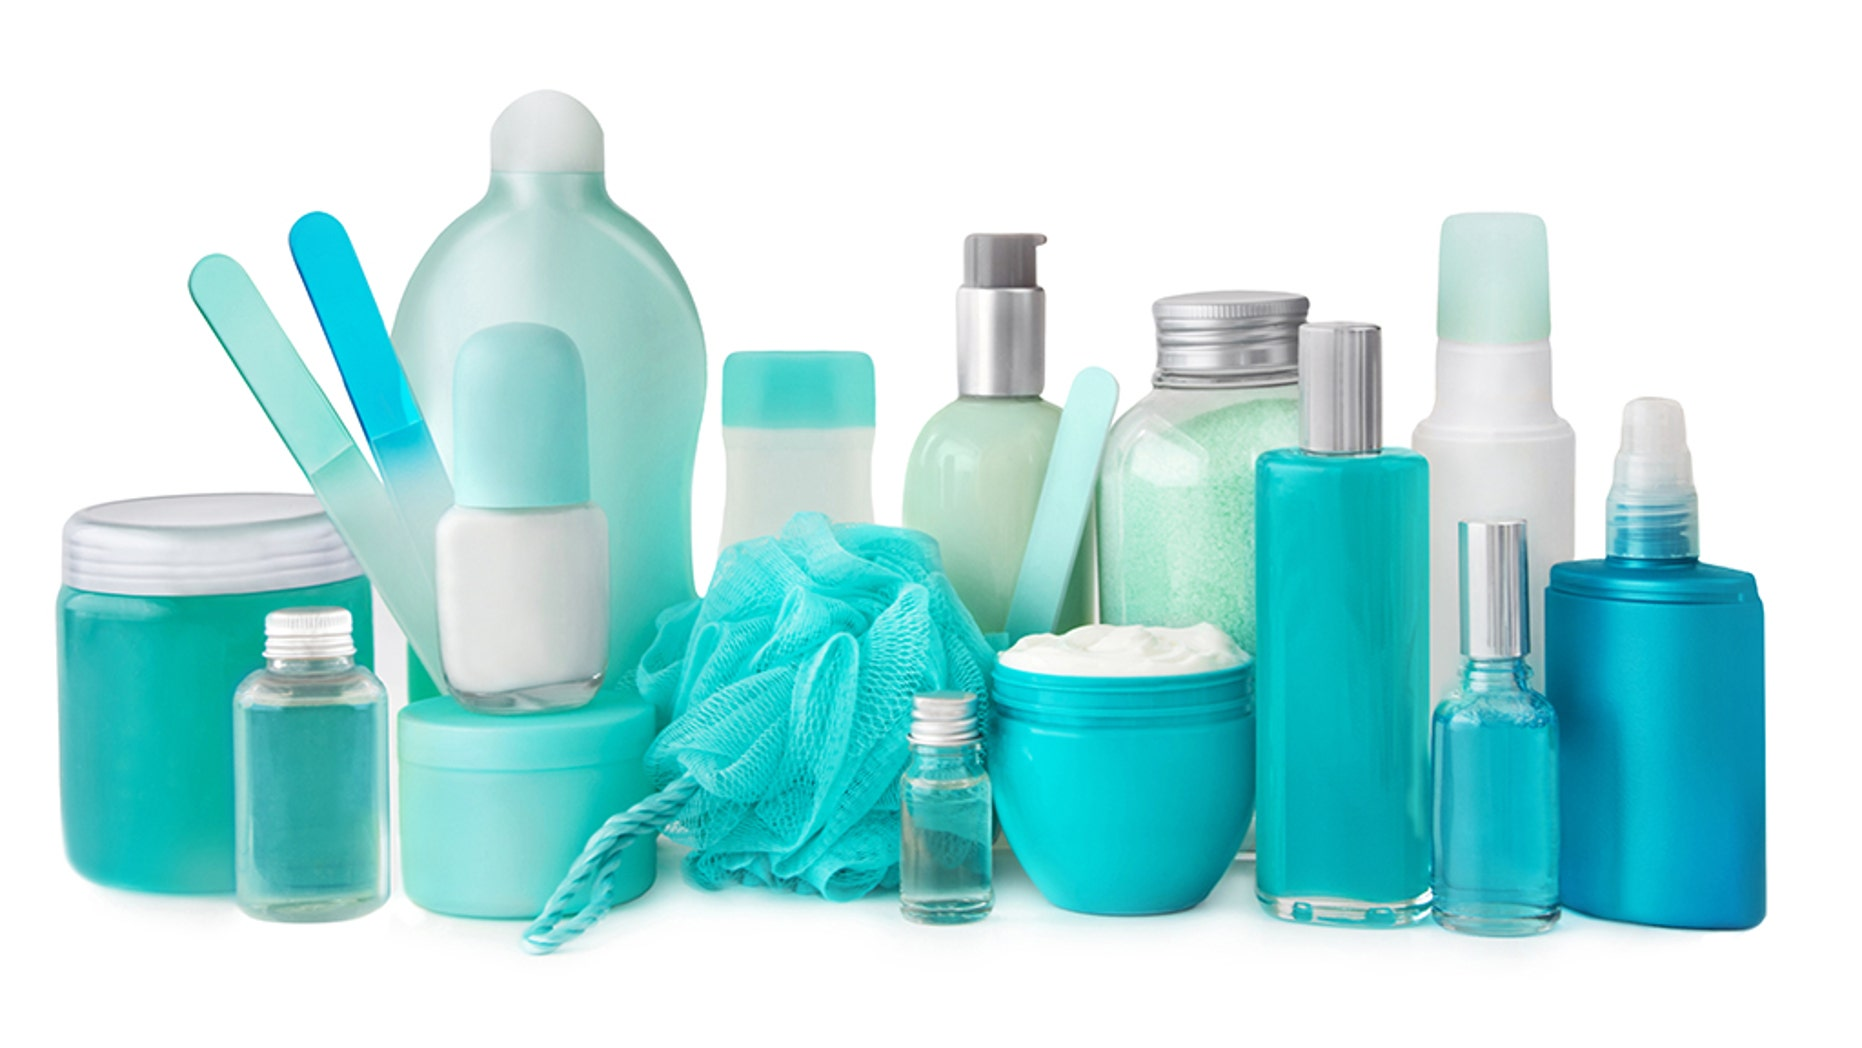 According to a recent study, certain chemicals contained in personal care products may help girls reach puberty earlier.